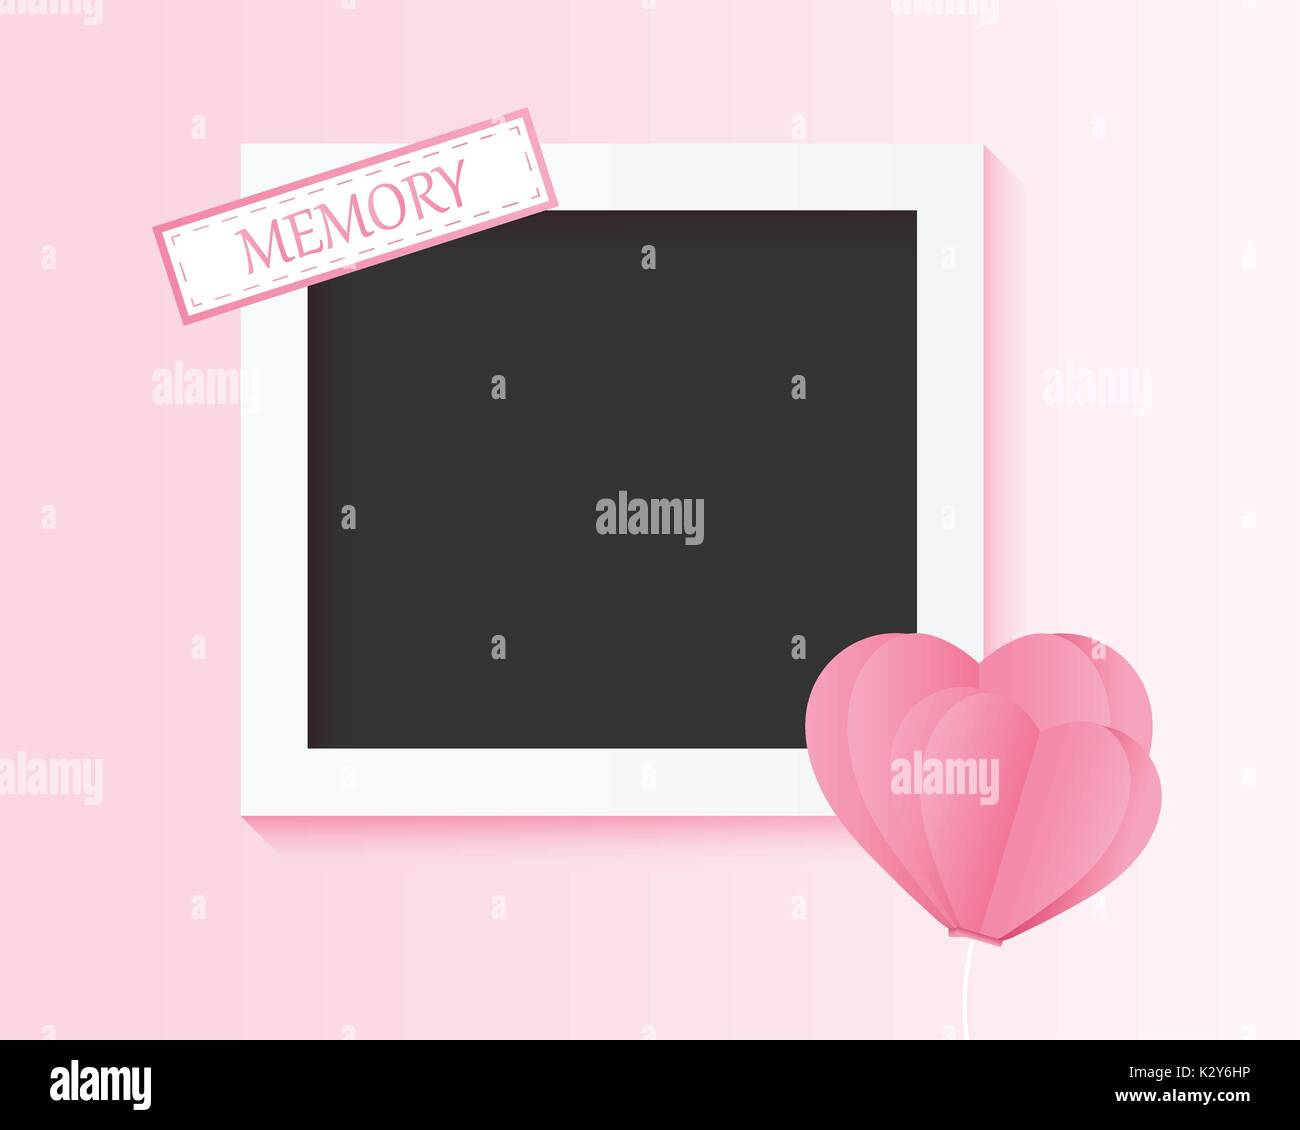 picture of the couple memory, photo frame with balloon heart valentine day , card invitation wedding lover younger style , vector illustration paper n - Stock Vector